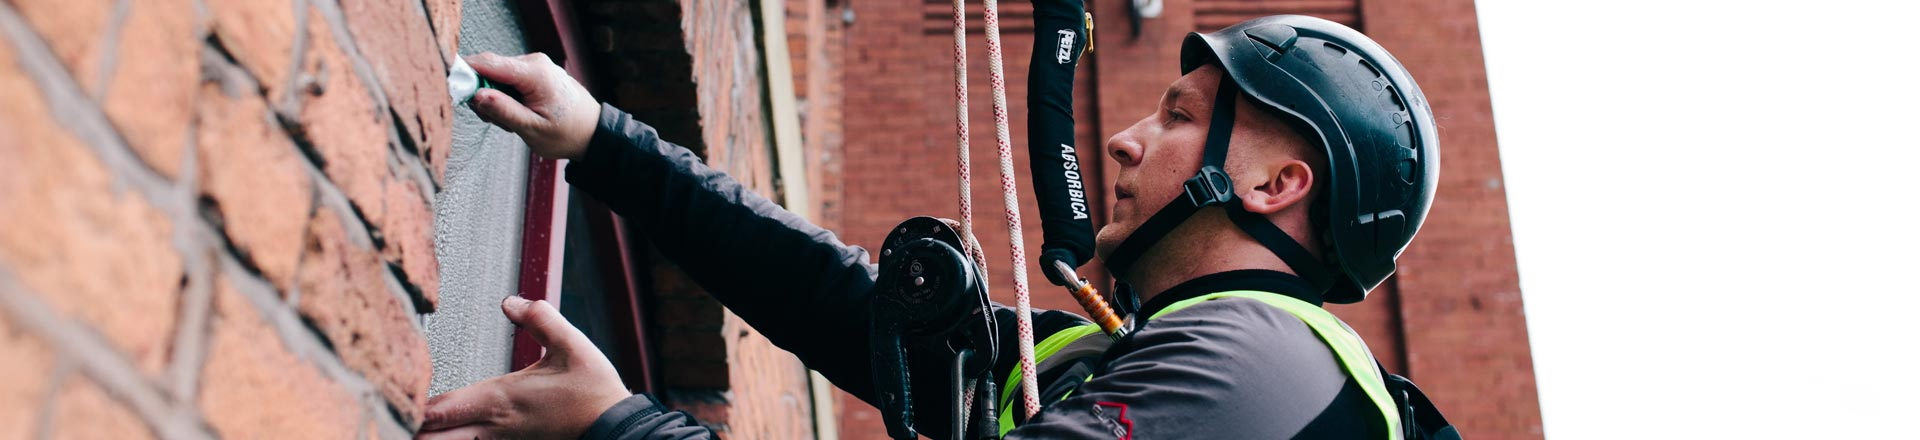 Abseiling/Rope Access Window Cleaning in Leeds - HCS Cleaning Services